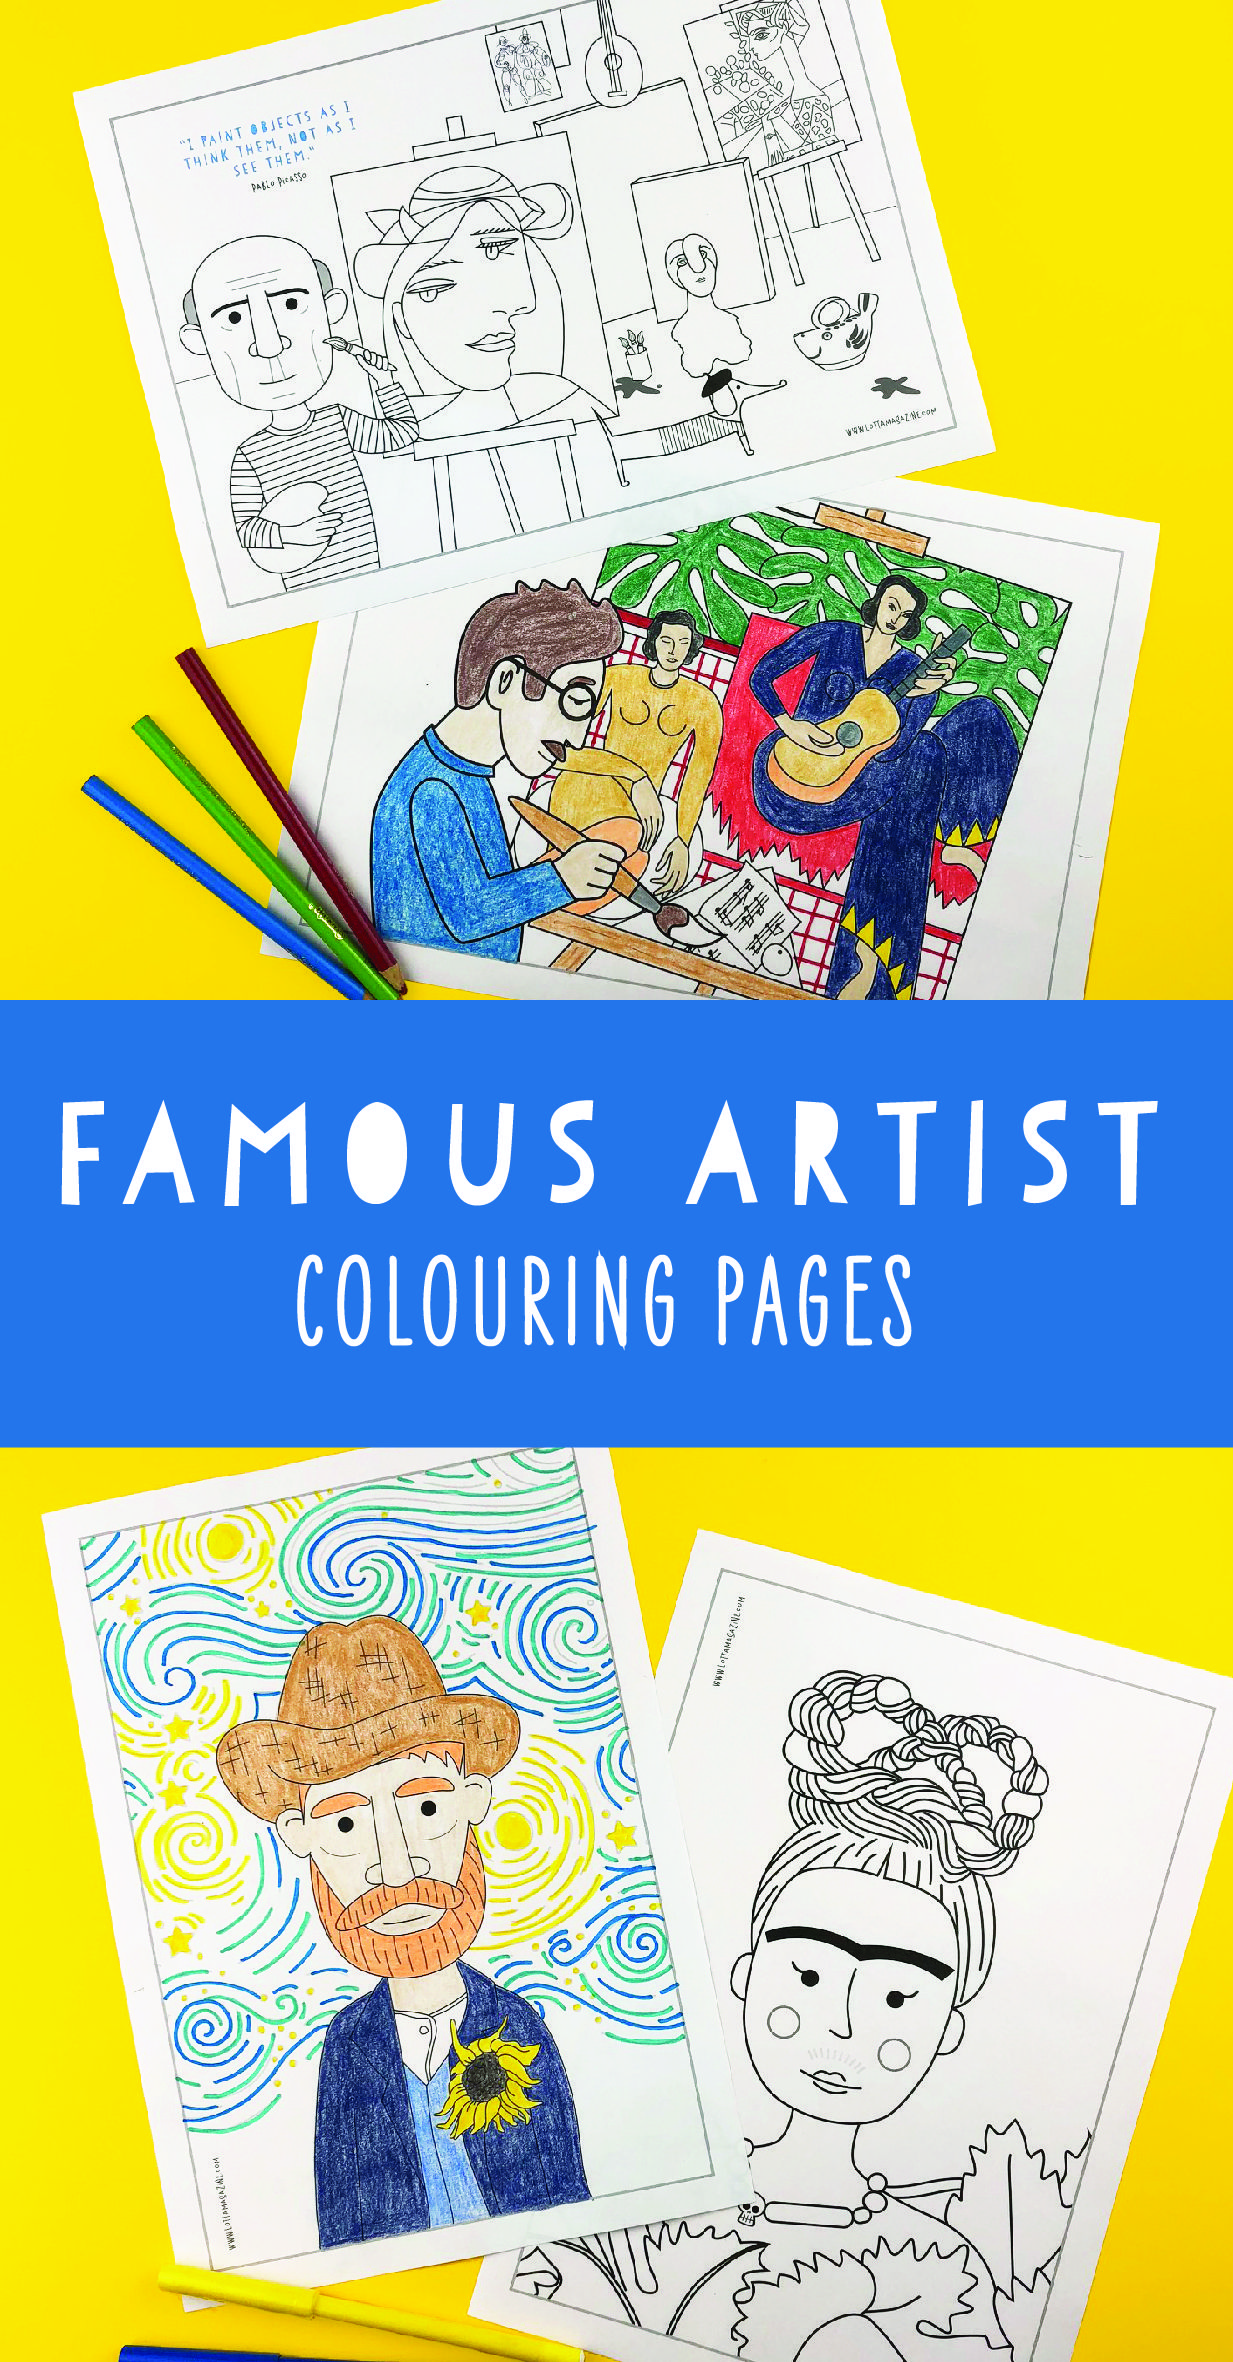 Famous artist coloring pages for kids. Picasso, Matisse, Van Gogh ...